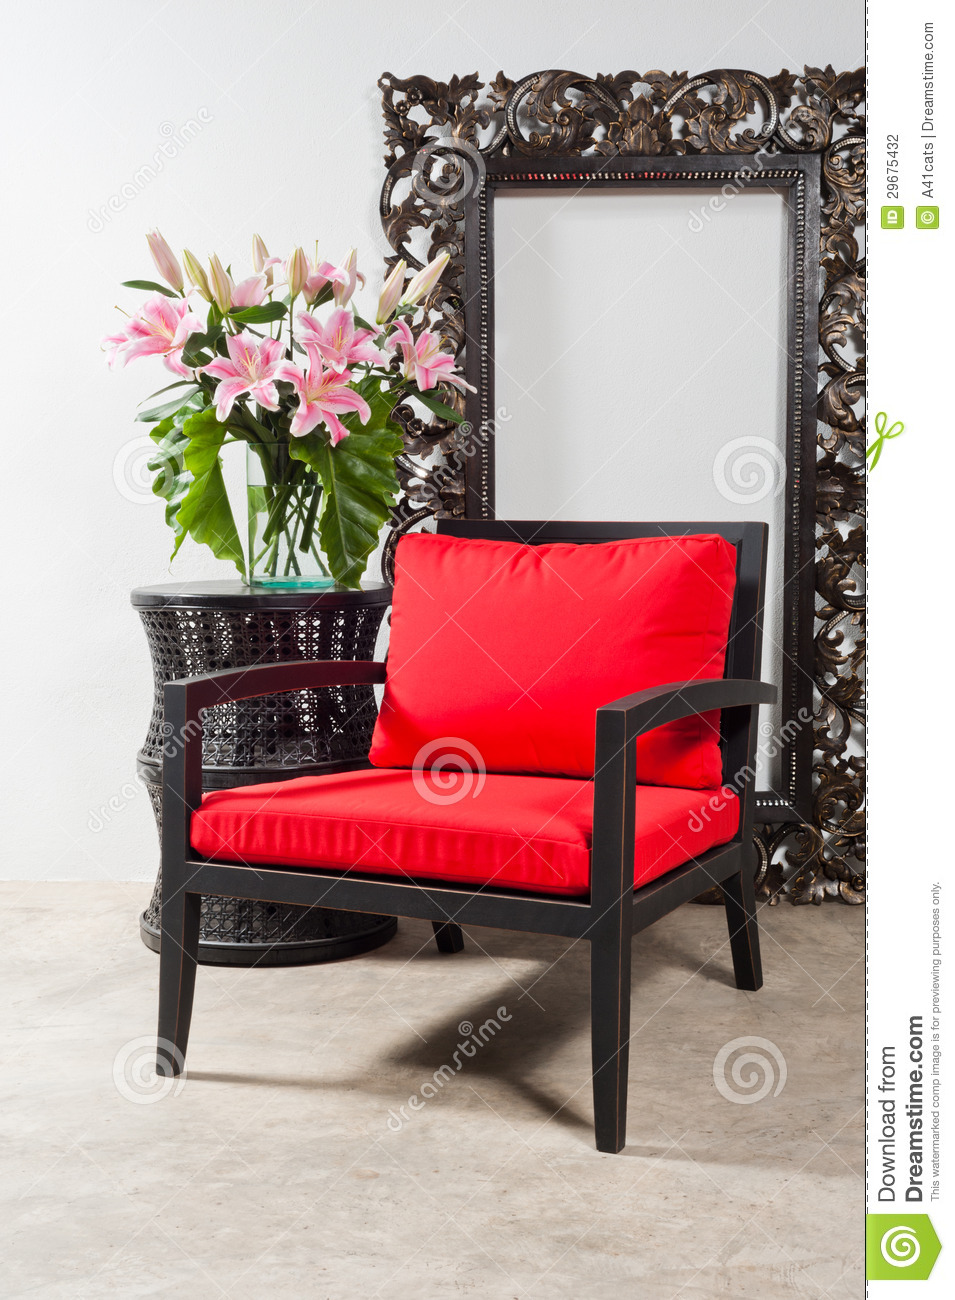 Red chair photography - Black Red Chair And Side Table Stock Photography